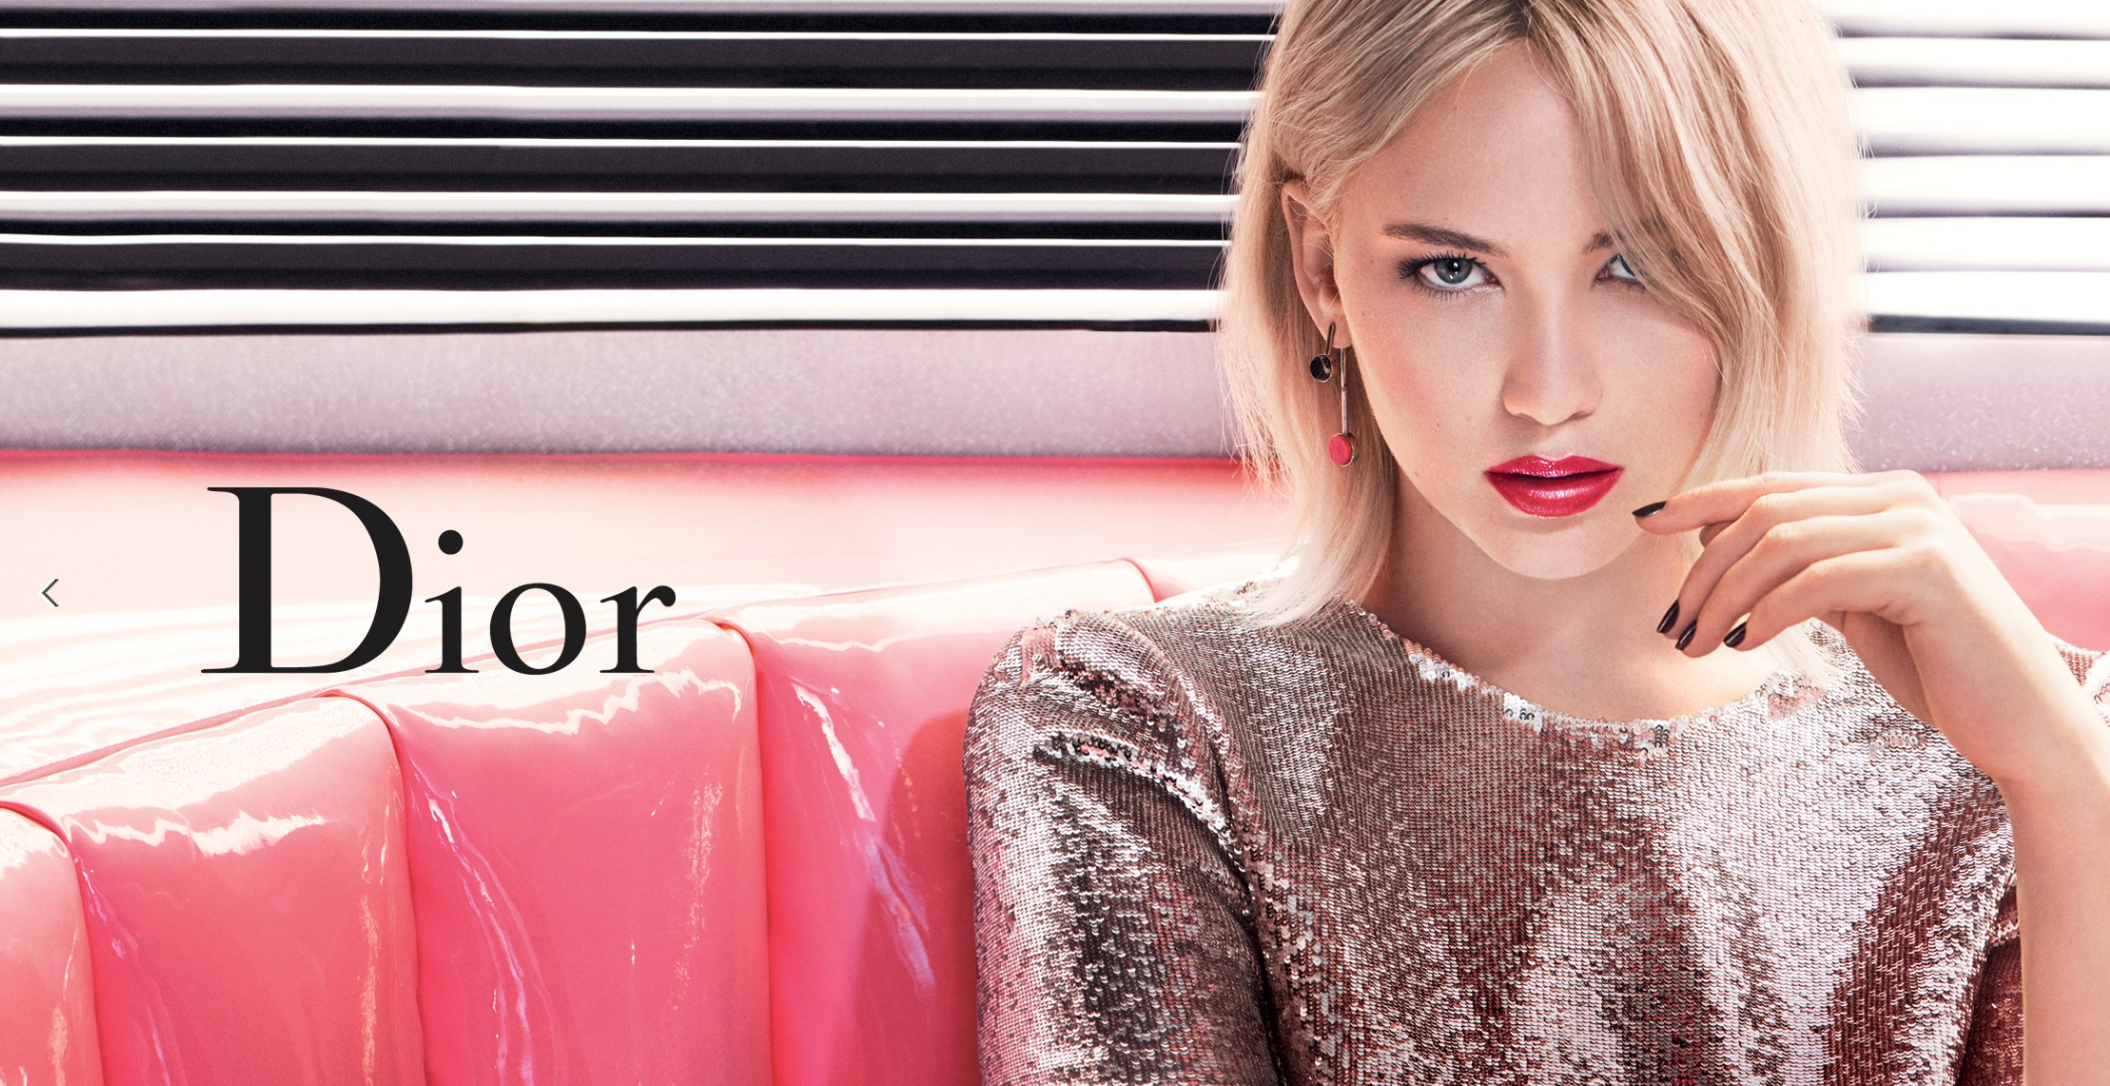 DIOR official website Discover Christian Dior fashion fragrances and accessories for Women and Men